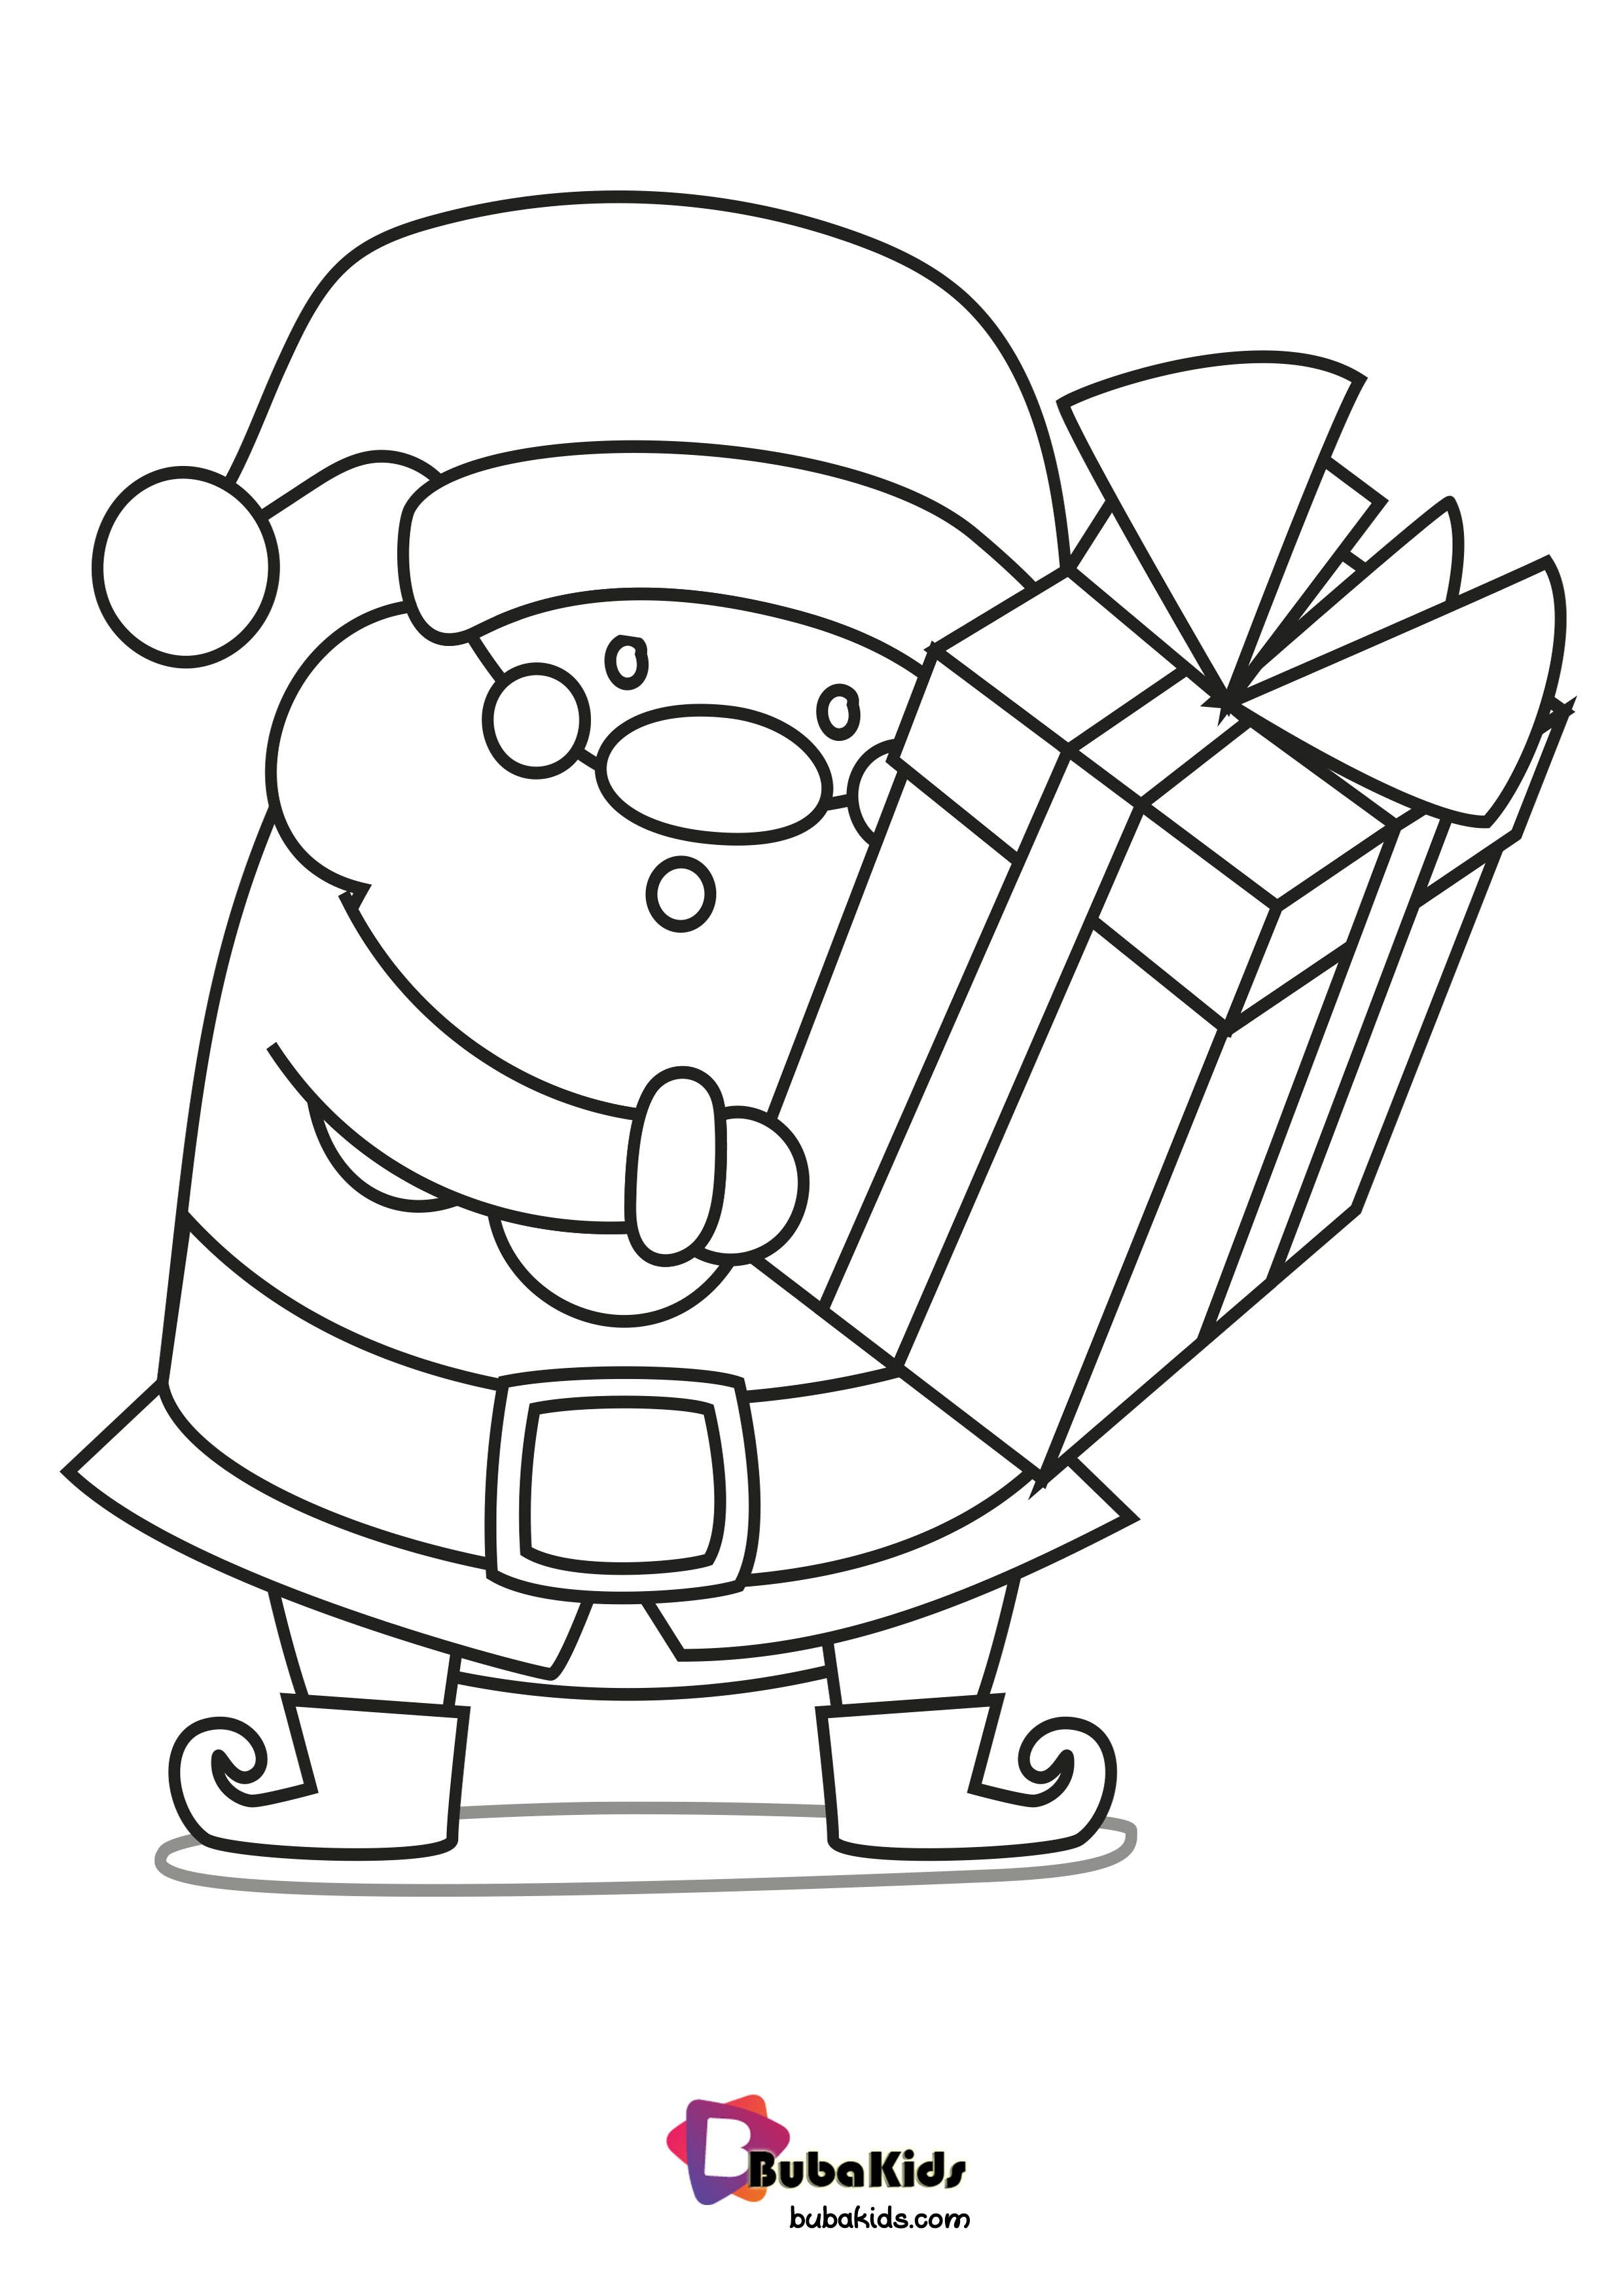 Santa Is Back With Gift Coloring Page Collection Of Cartoon Coloring Pages For Teenage Printable Coloring Pages Cartoon Coloring Pages Printable Coloring Book